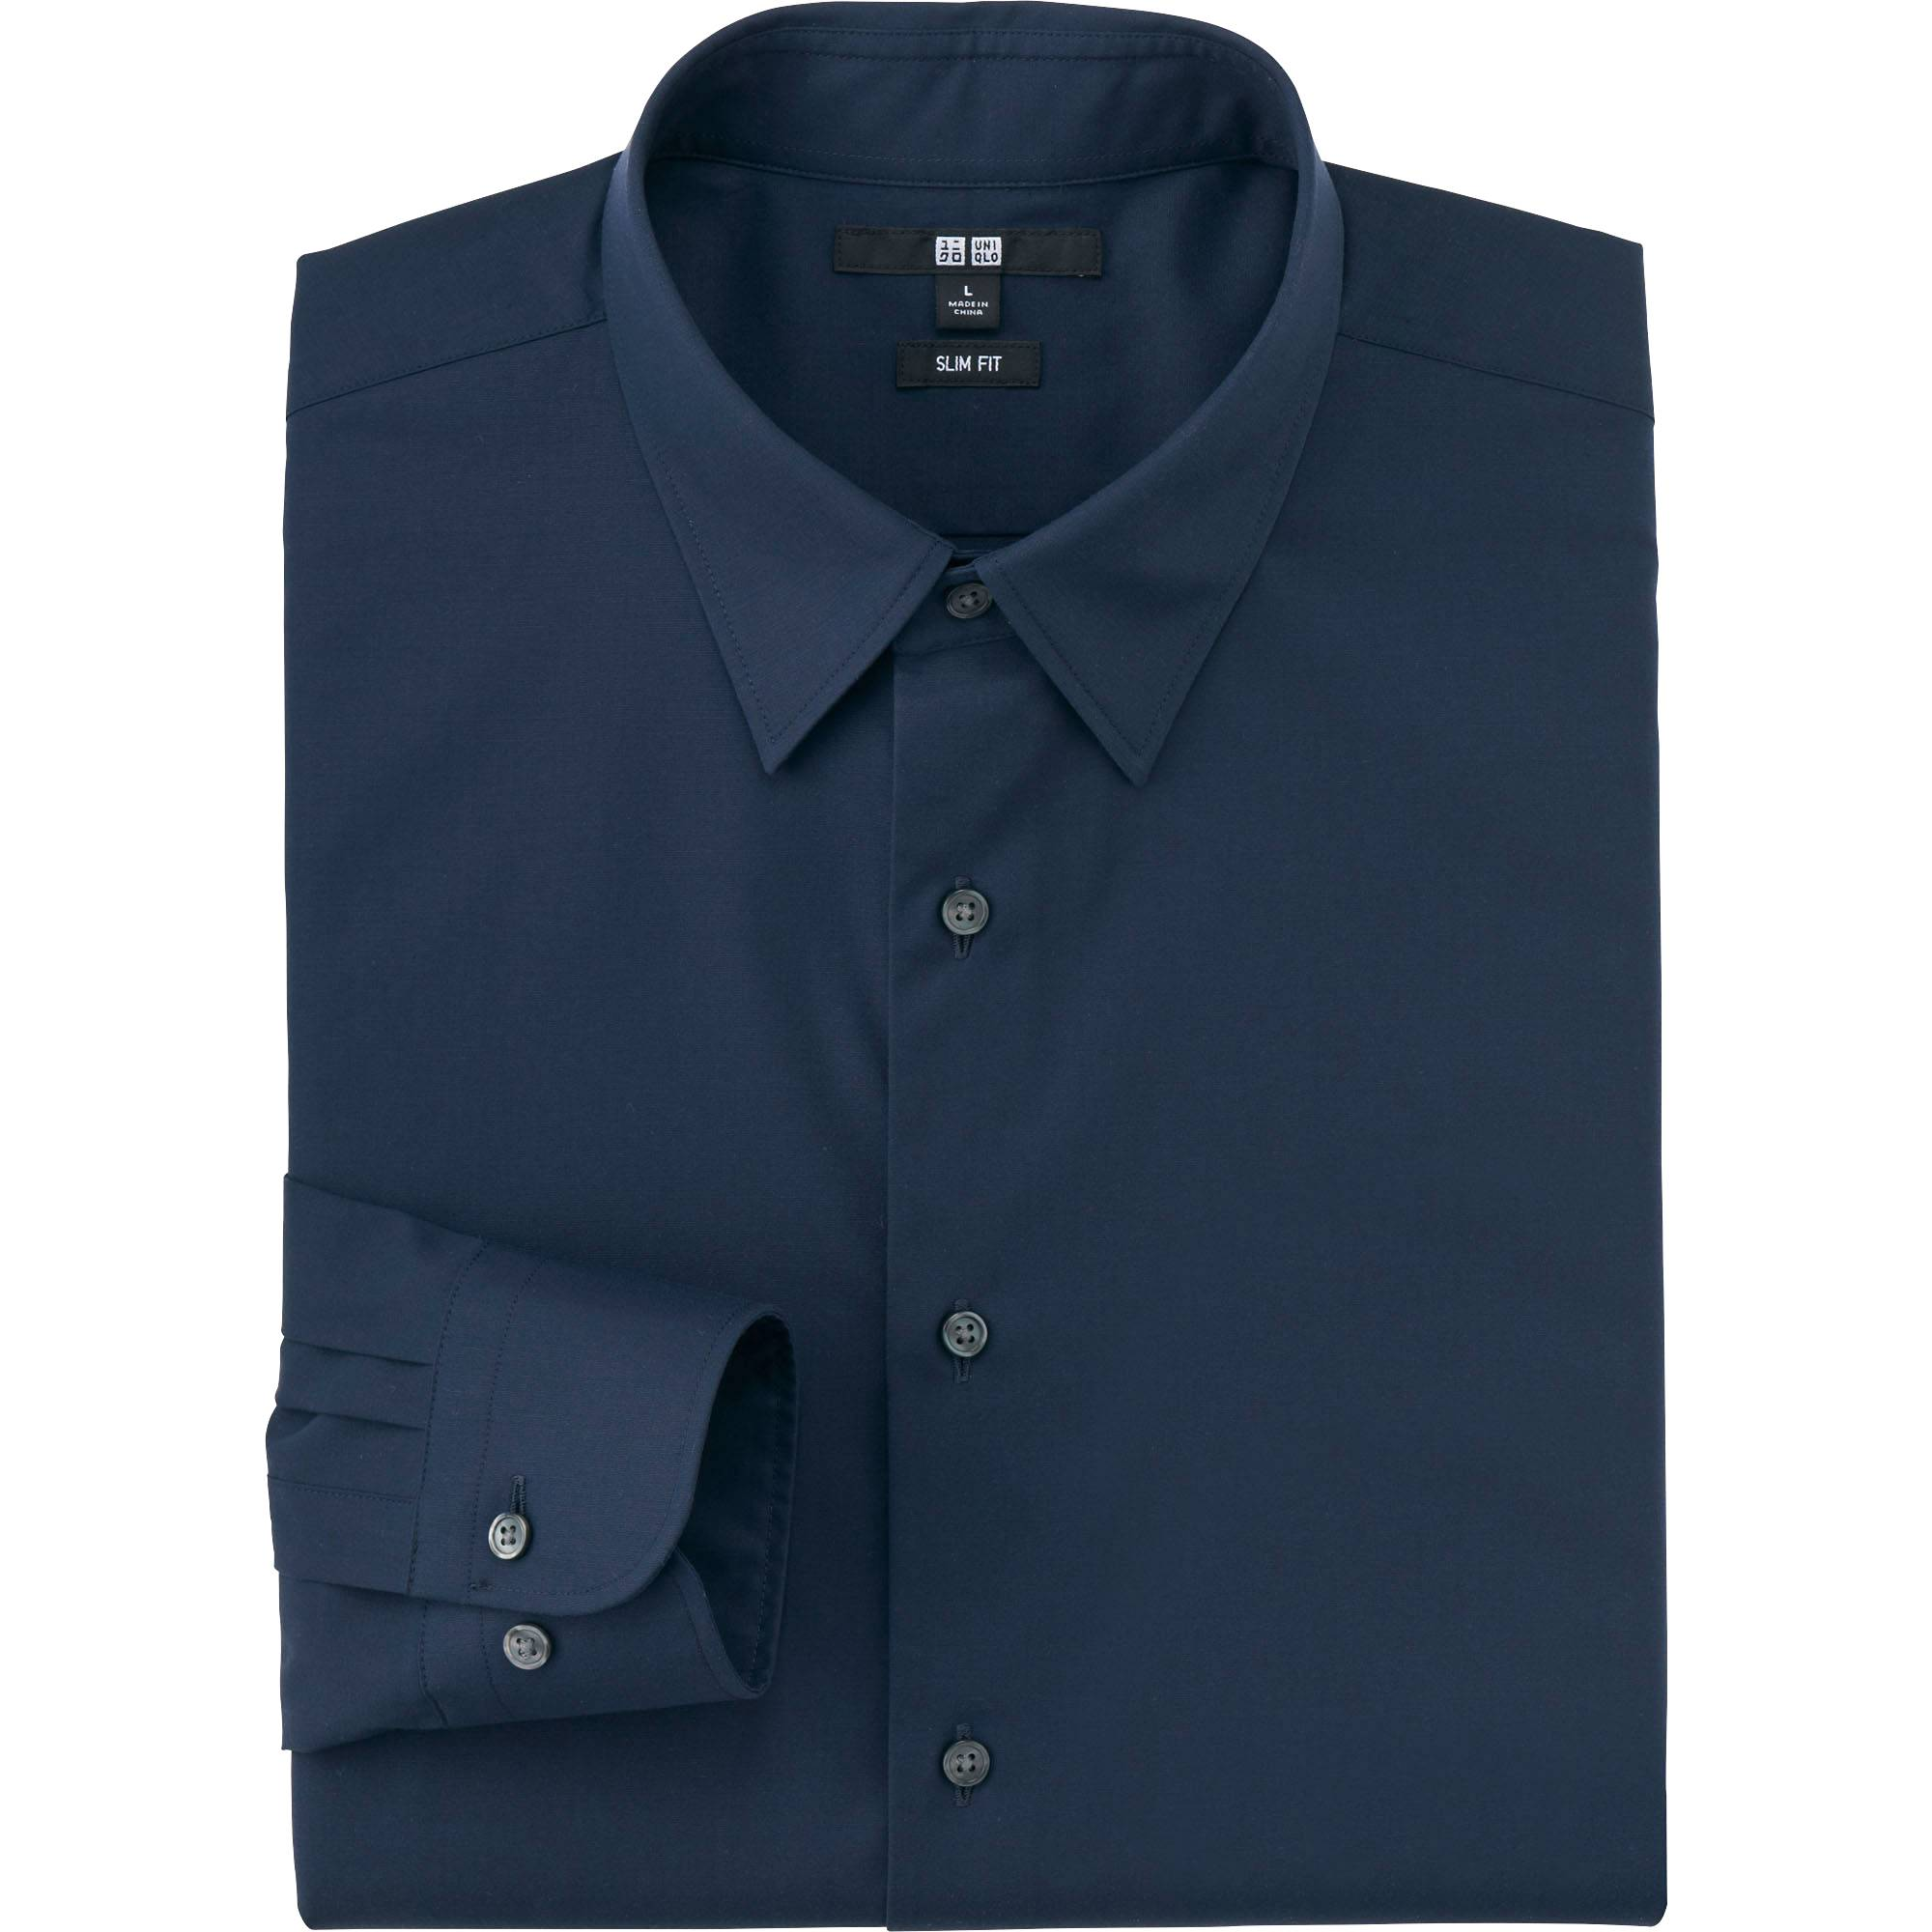 Men's Easy Care Broadcloth Slim-Fit Dress Shirt | UNIQLO US